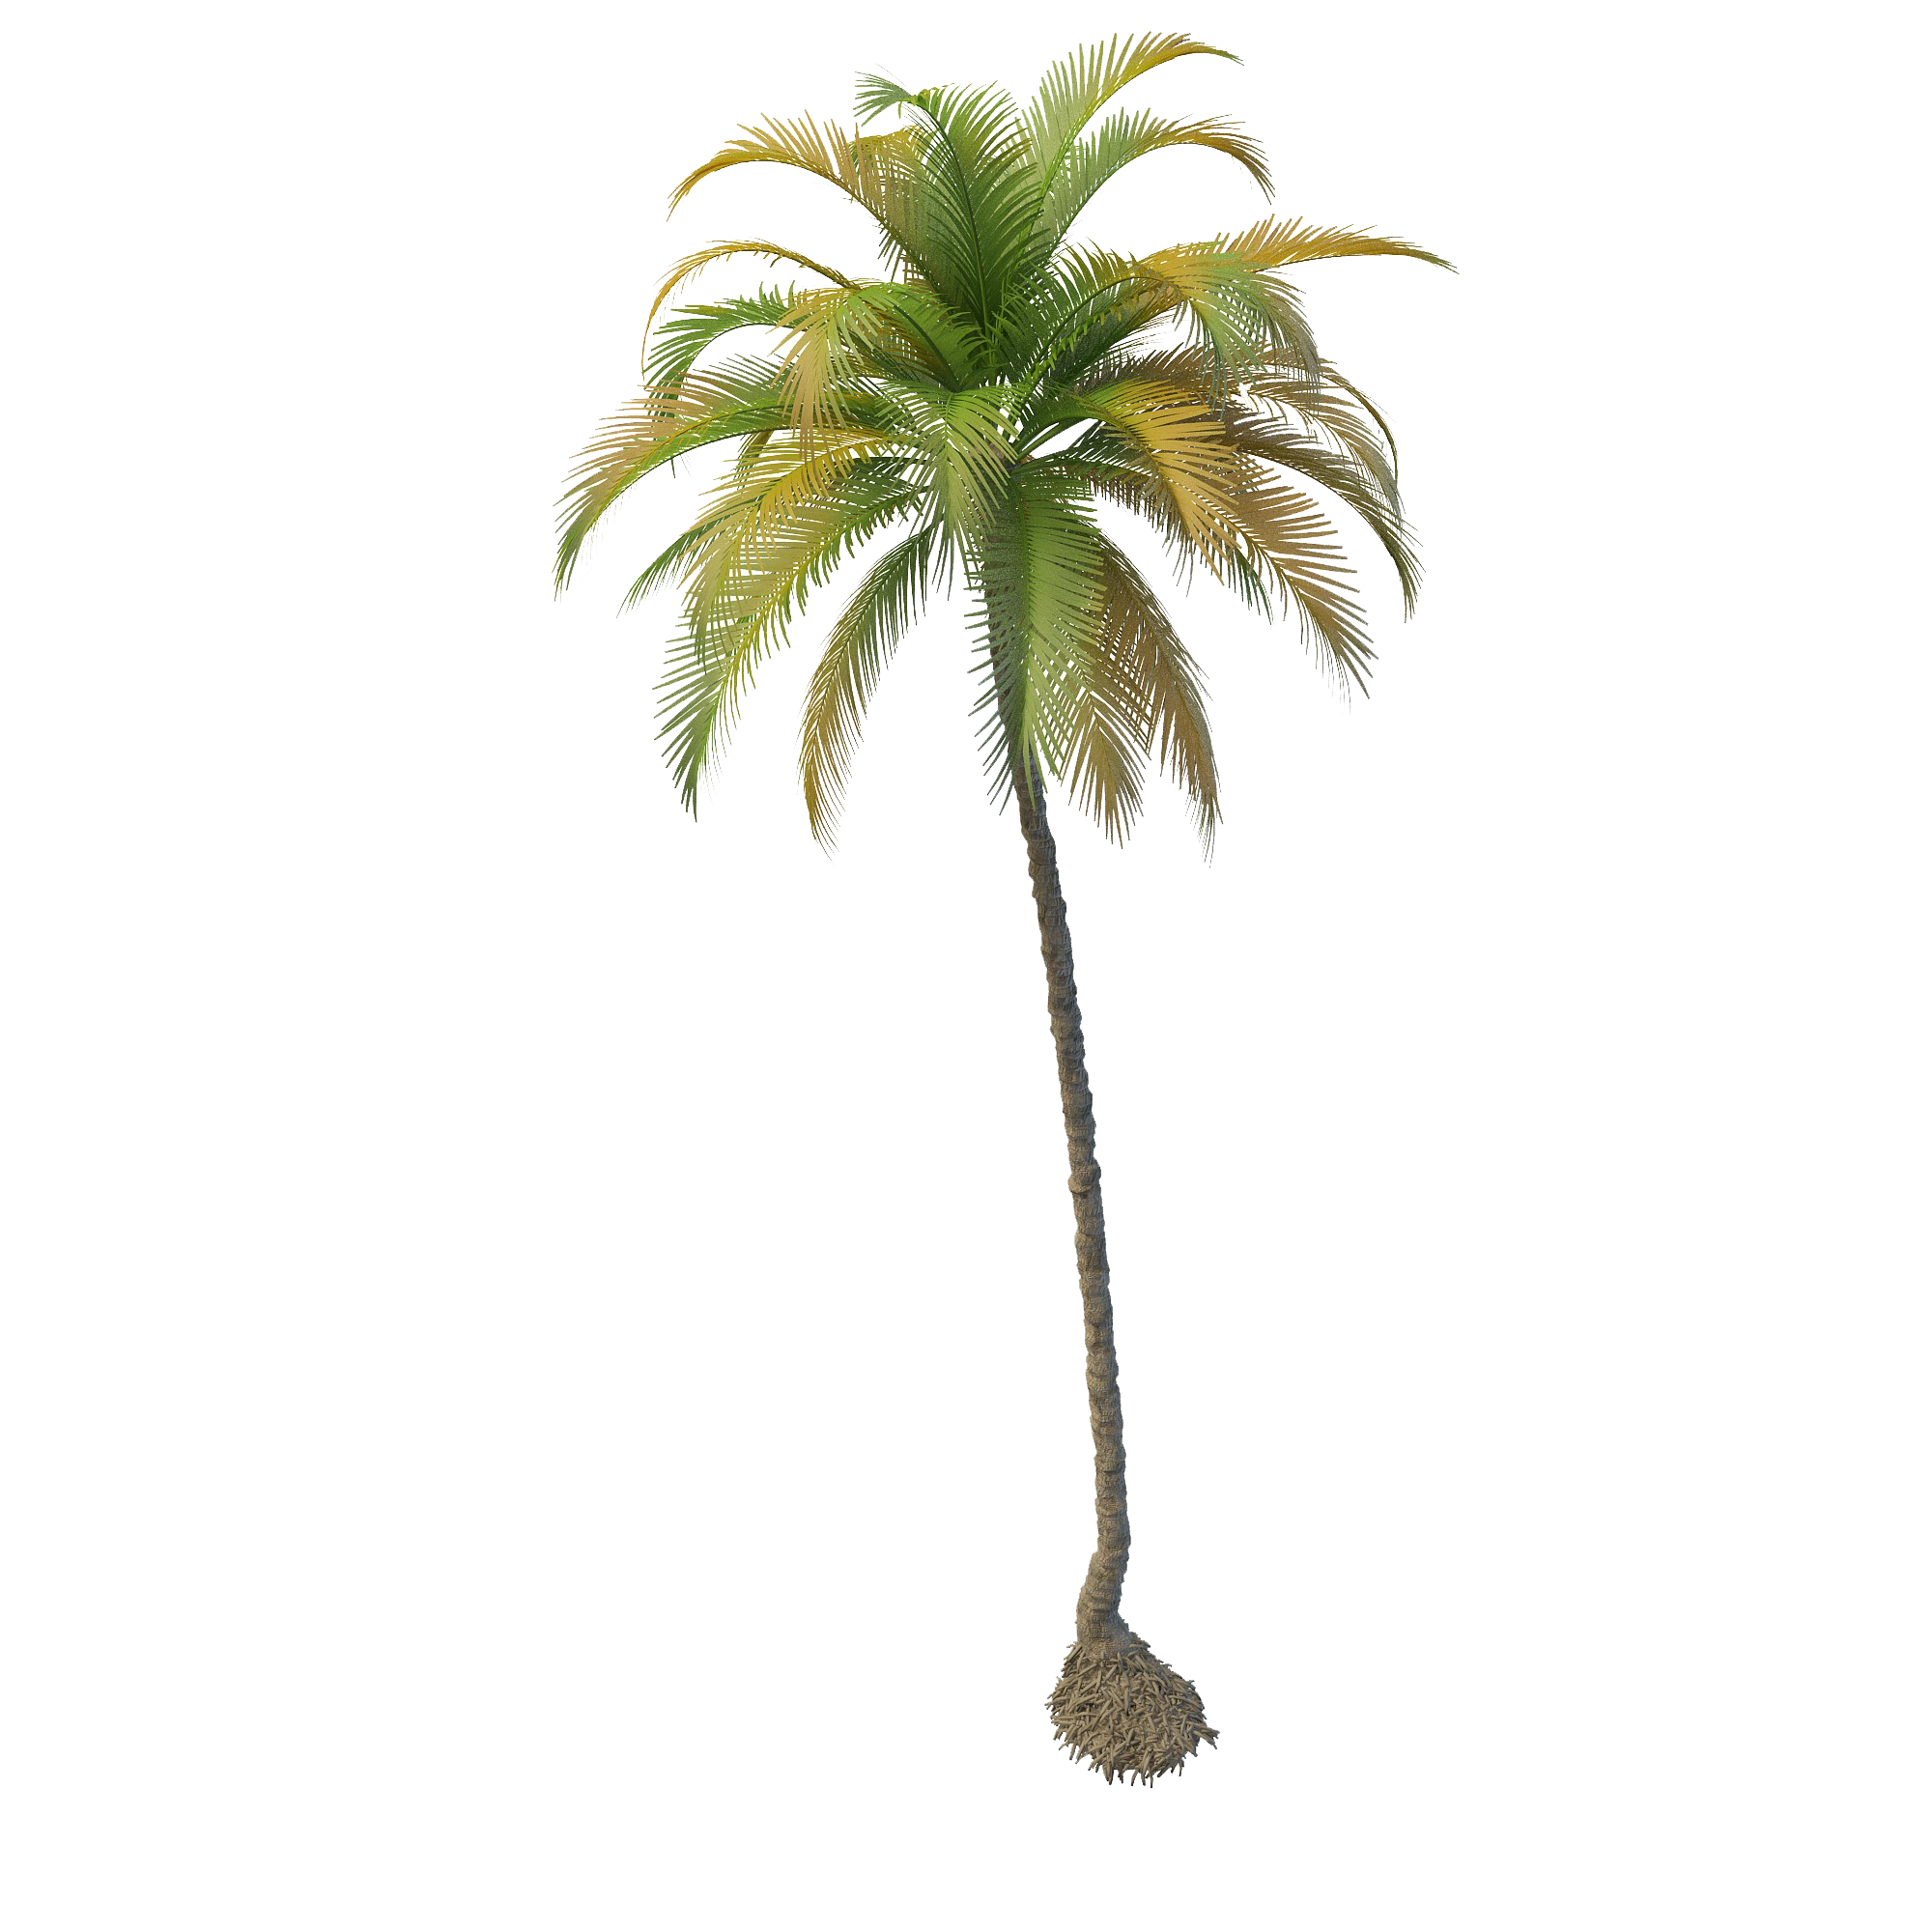 Coconut palm png. Tree images transparent free